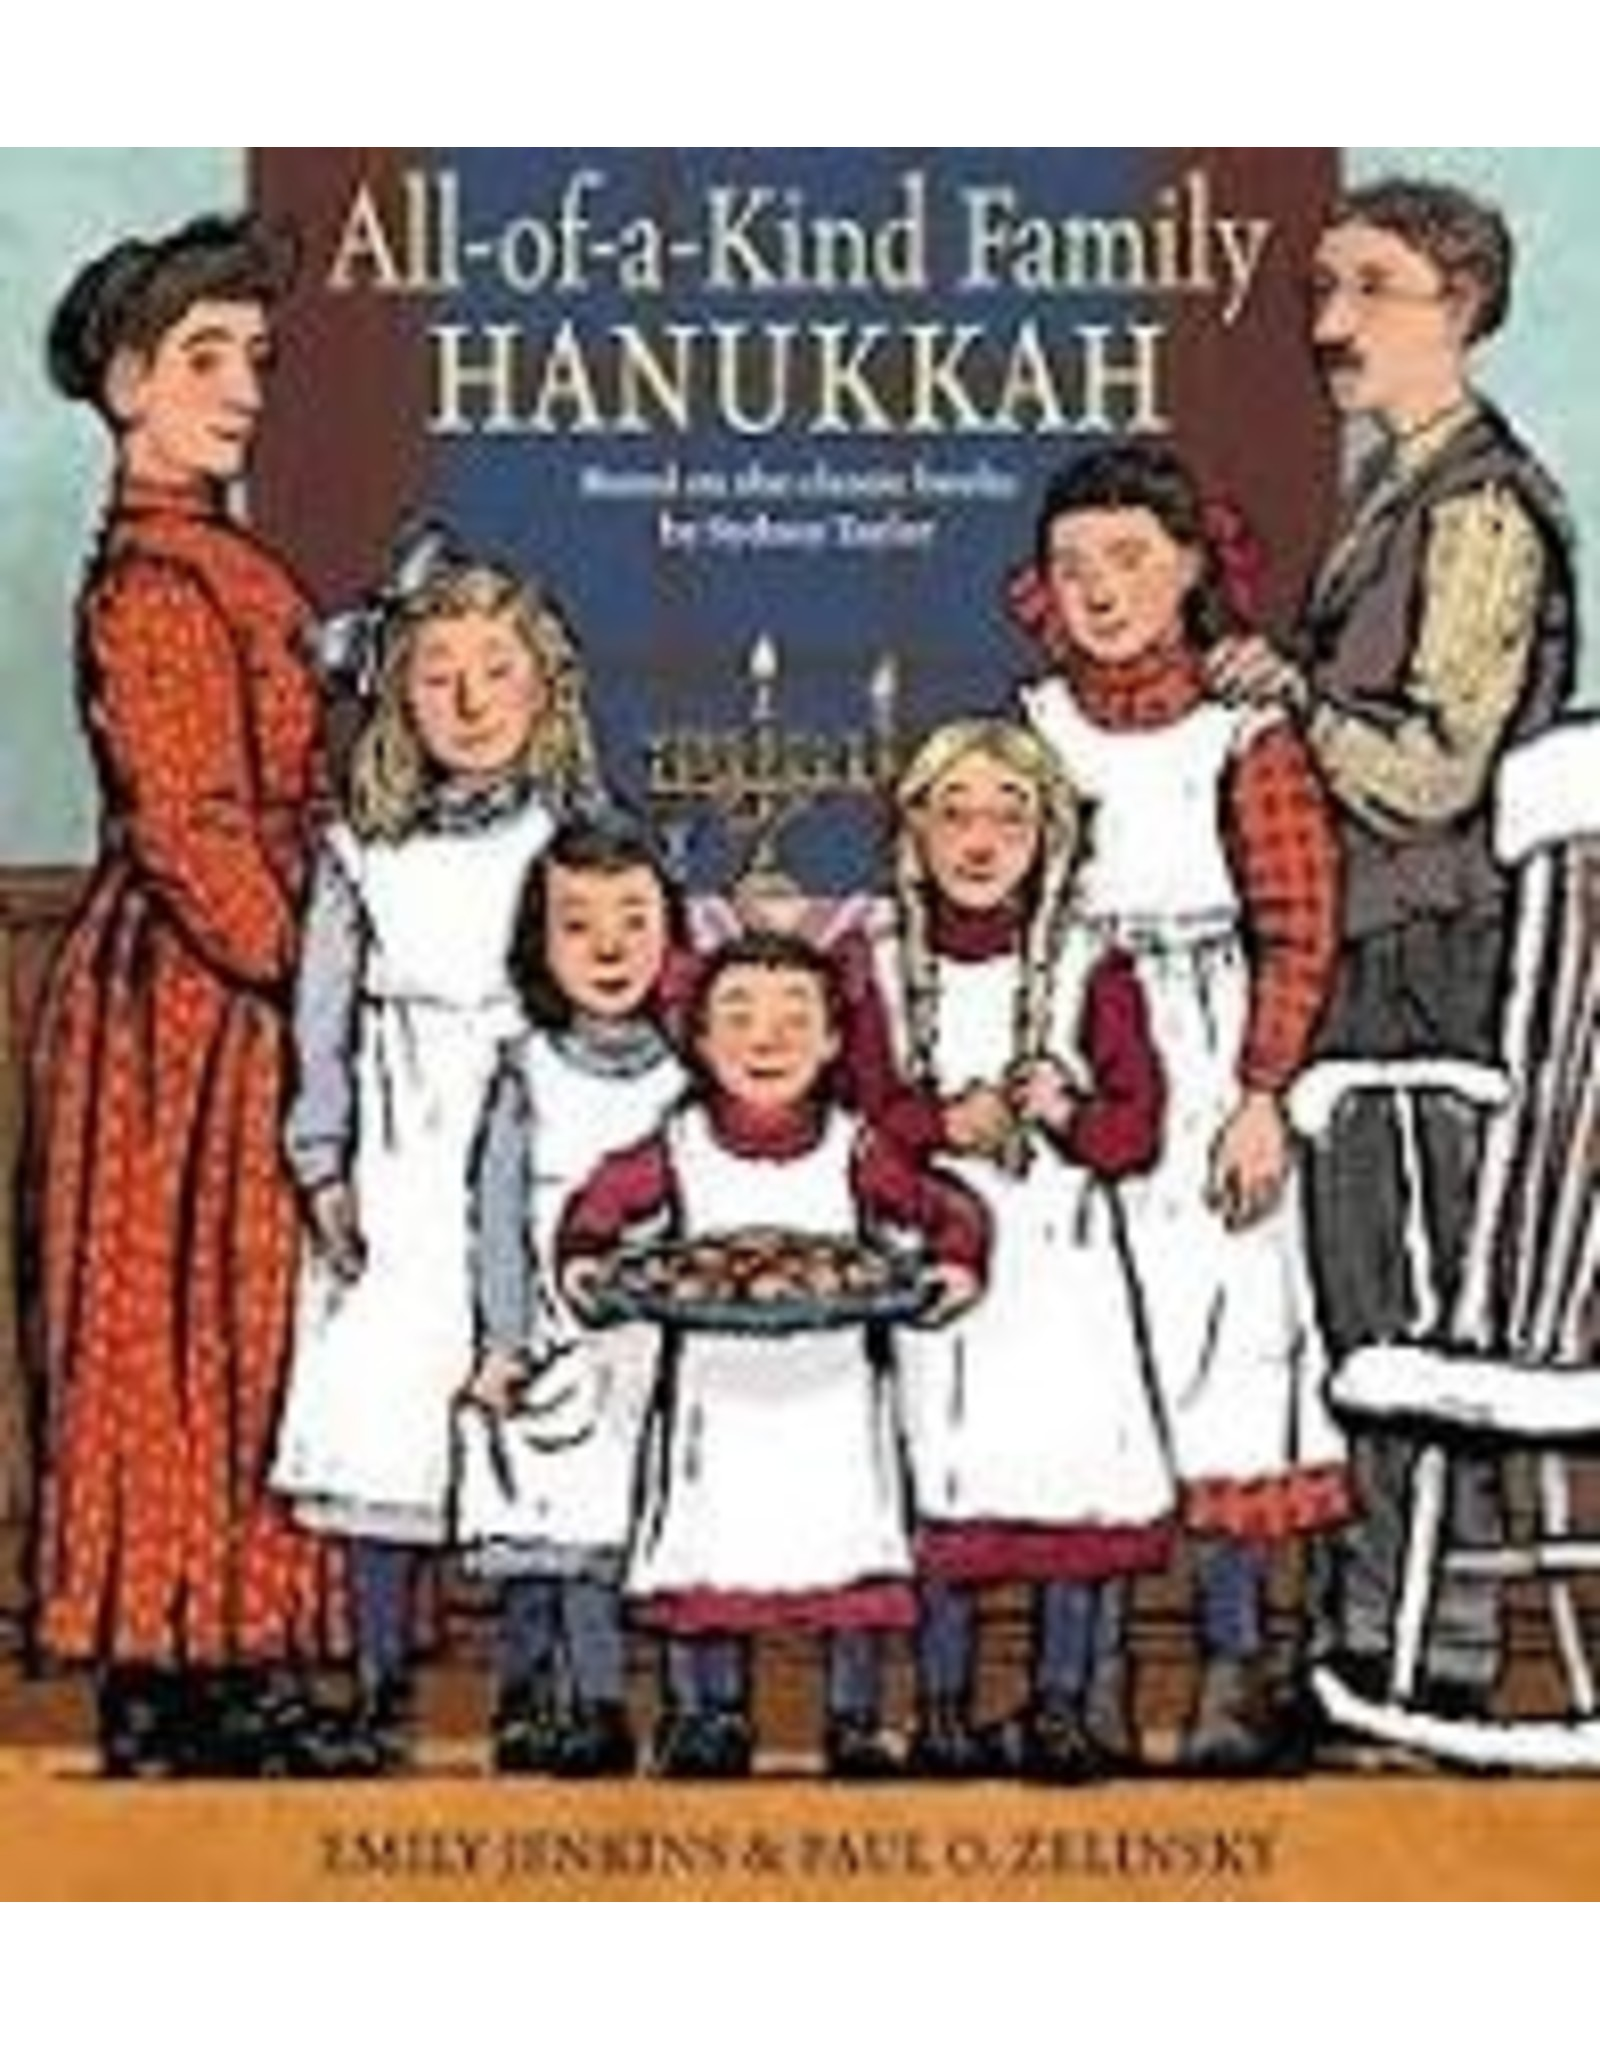 Books All-of-a-Kind Family Hanukkah based on classic books by Sydney Taylor written by Emily Jenkins and Paulo Zelinksky (Holiday Catalog)